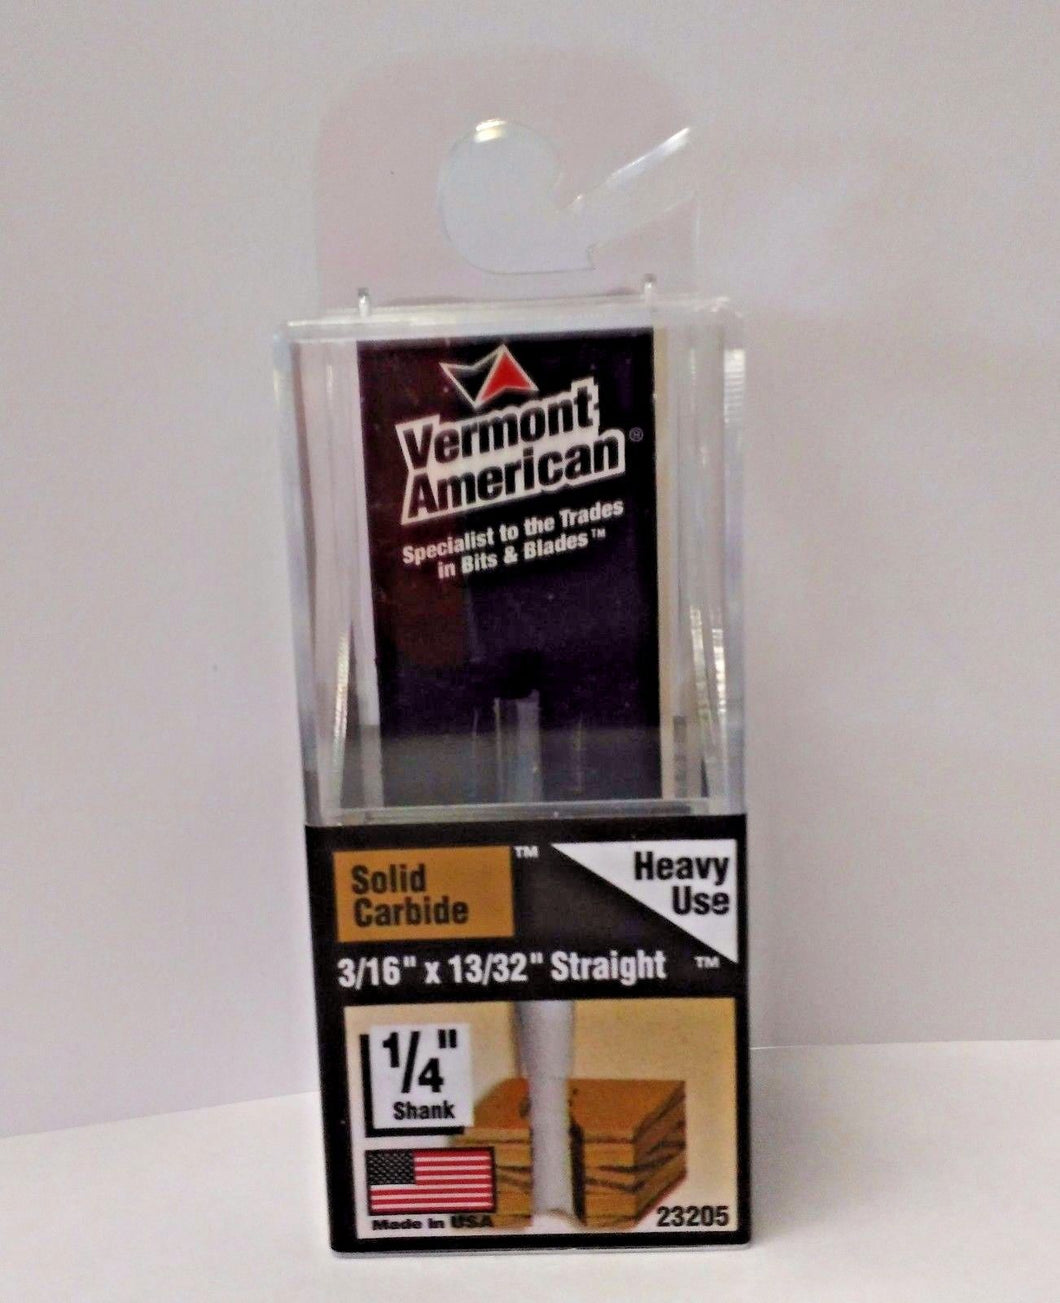 Vermont American 23205 3/16 x 13/32 Carbide Router Bit USA